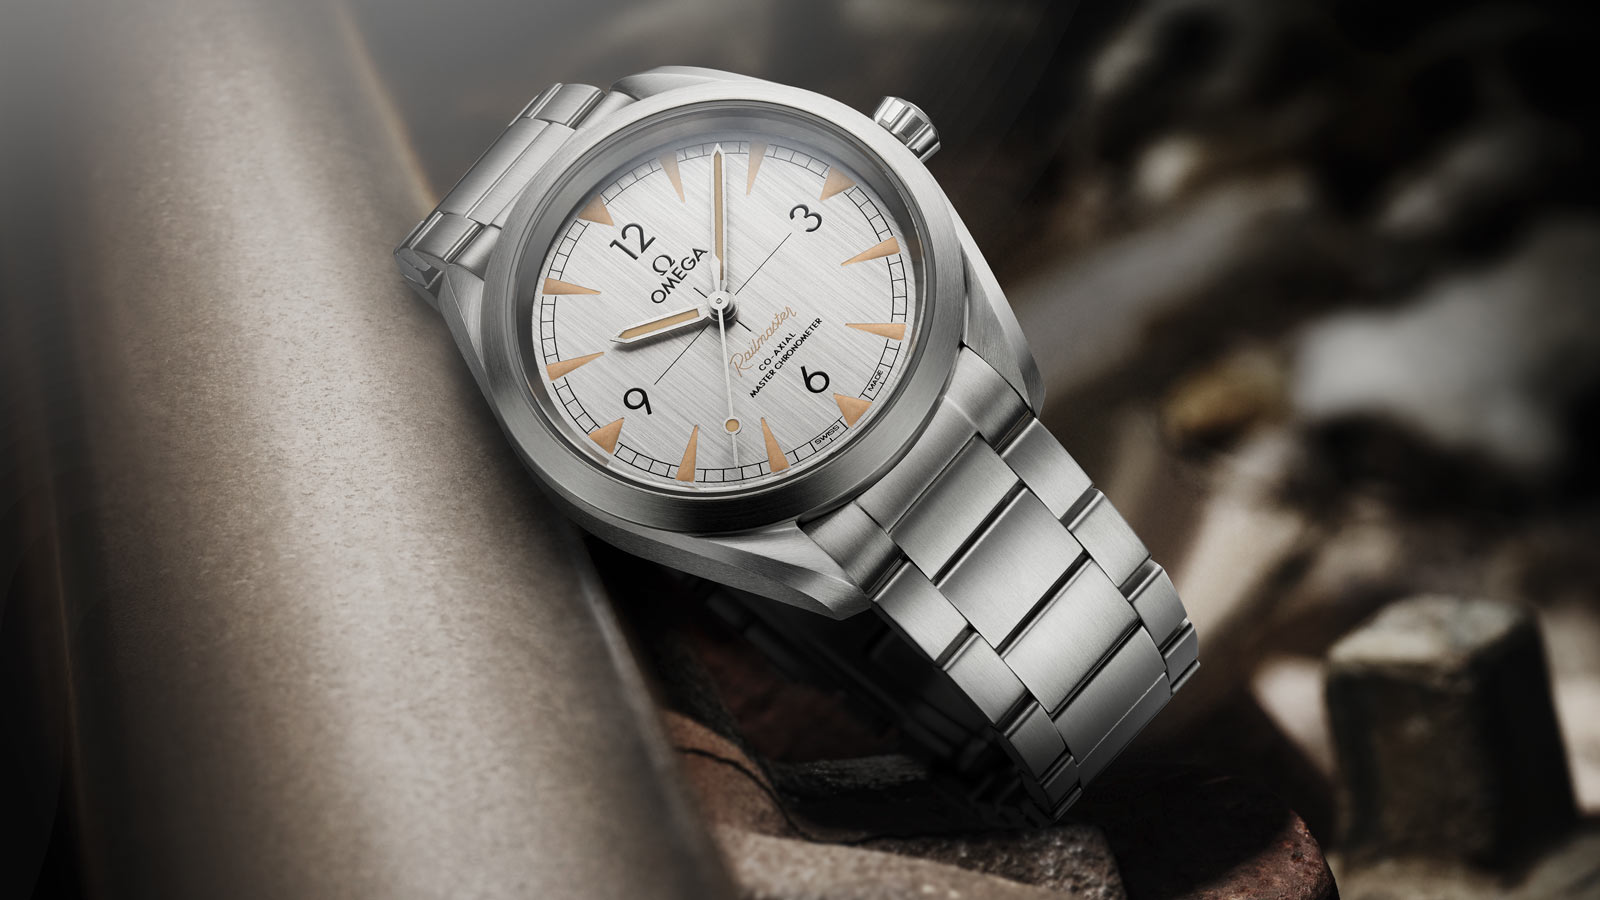 Seamaster レイルマスター Railmaster Omega Co‑Axial Master Chronometer 40 mm - 220.10.40.20.06.001 - ビュー 1